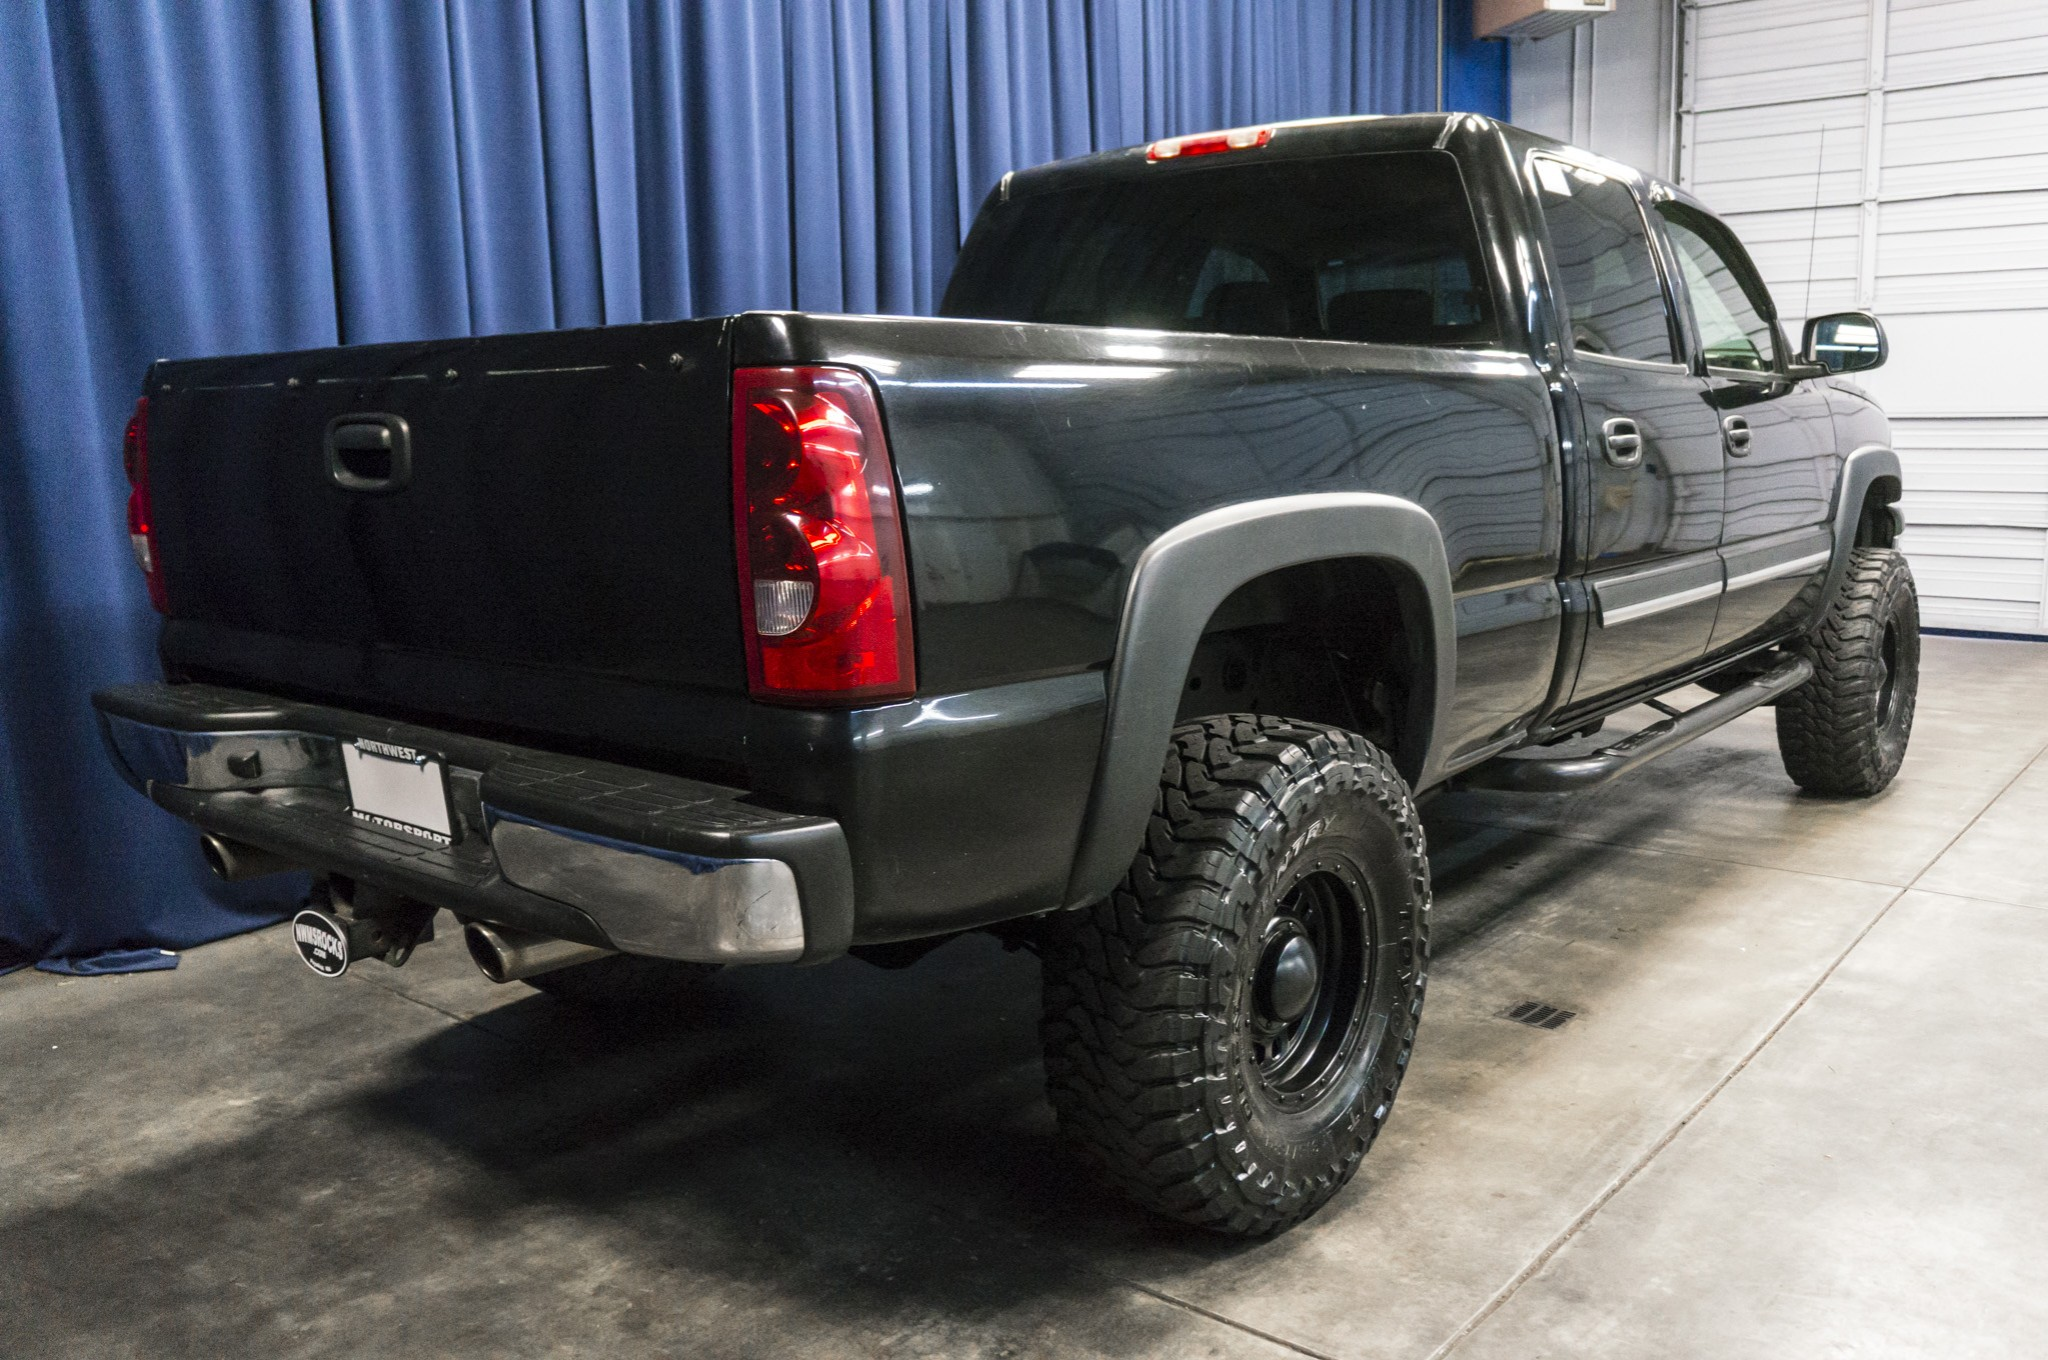 used lifted 2003 chevrolet silverado 1500 4x4 truck for sale 36287a. Black Bedroom Furniture Sets. Home Design Ideas